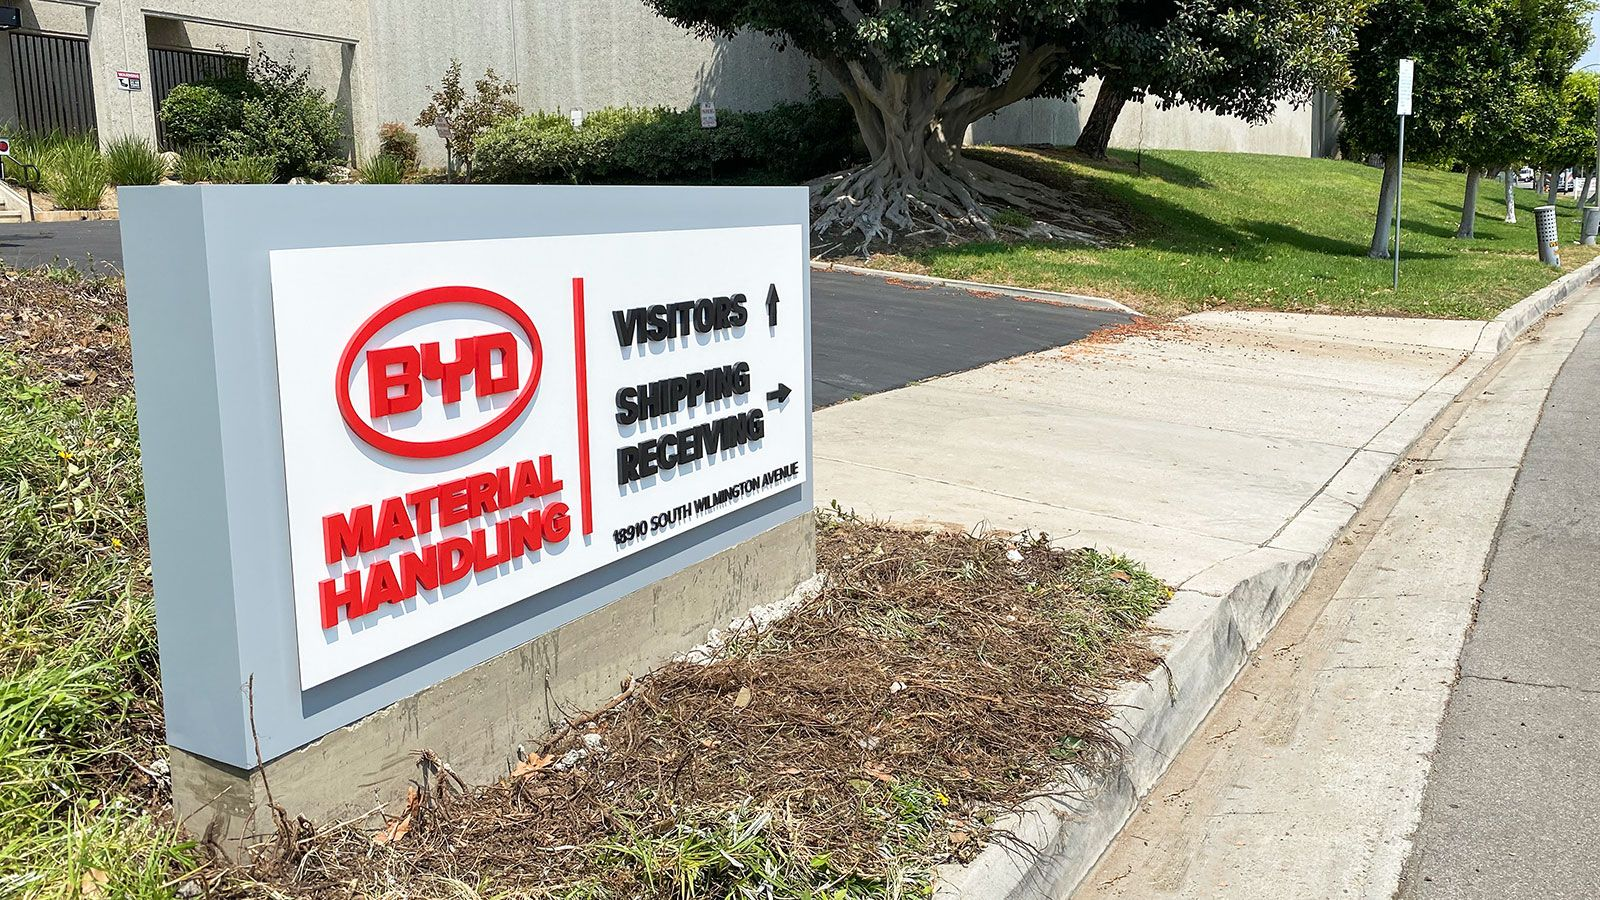 BYD outdoor monument sign